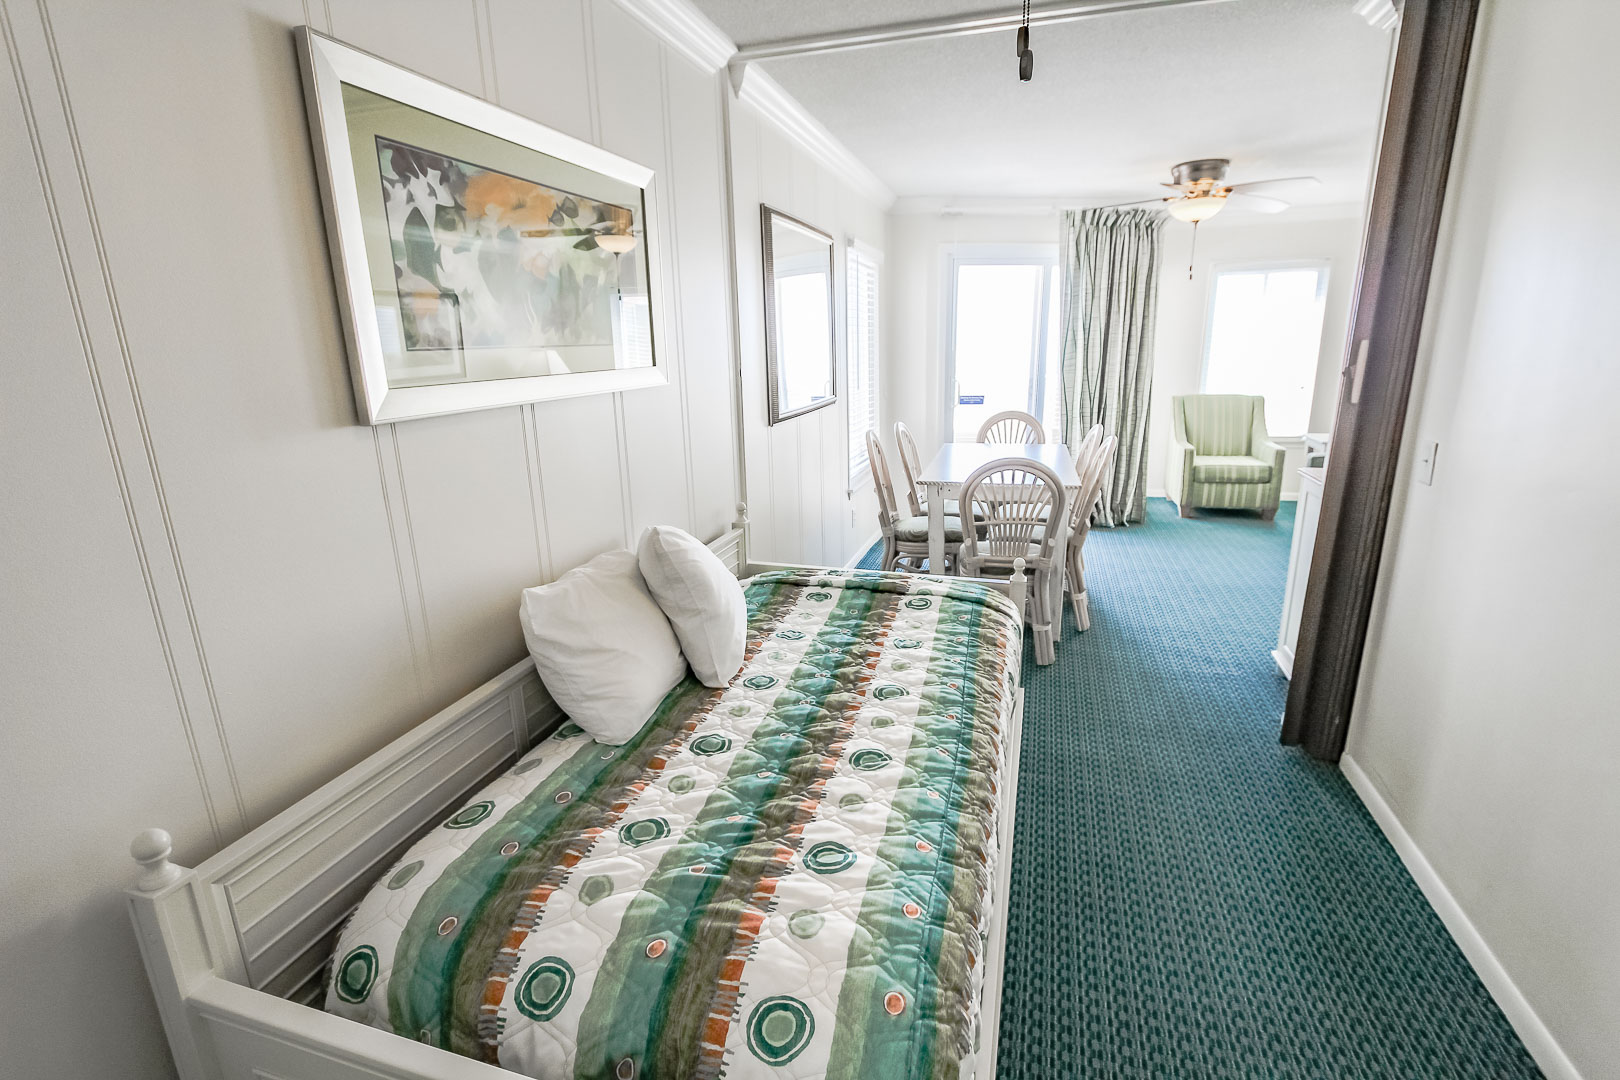 A cozy 1 and a half bedroom unit at VRI's A Place at the Beach III in North Carolina